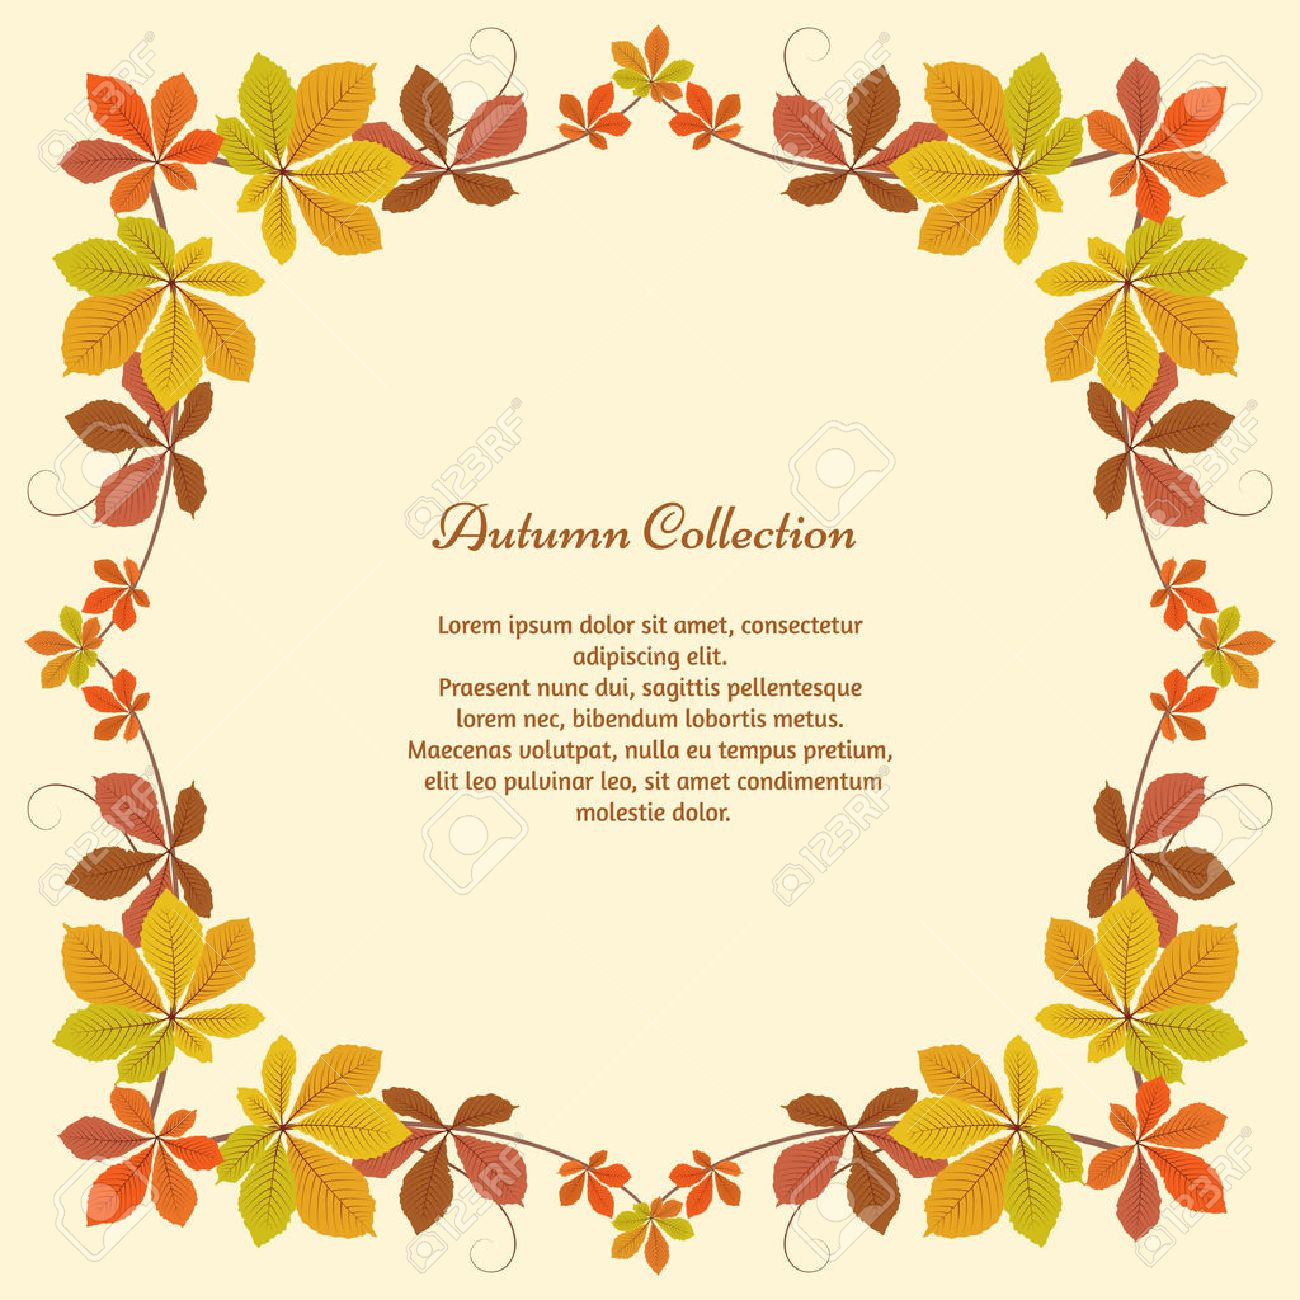 Abstract autumn background, square frame with yellow chestnut leaves, autumn leaves, seasonal background - 45459103